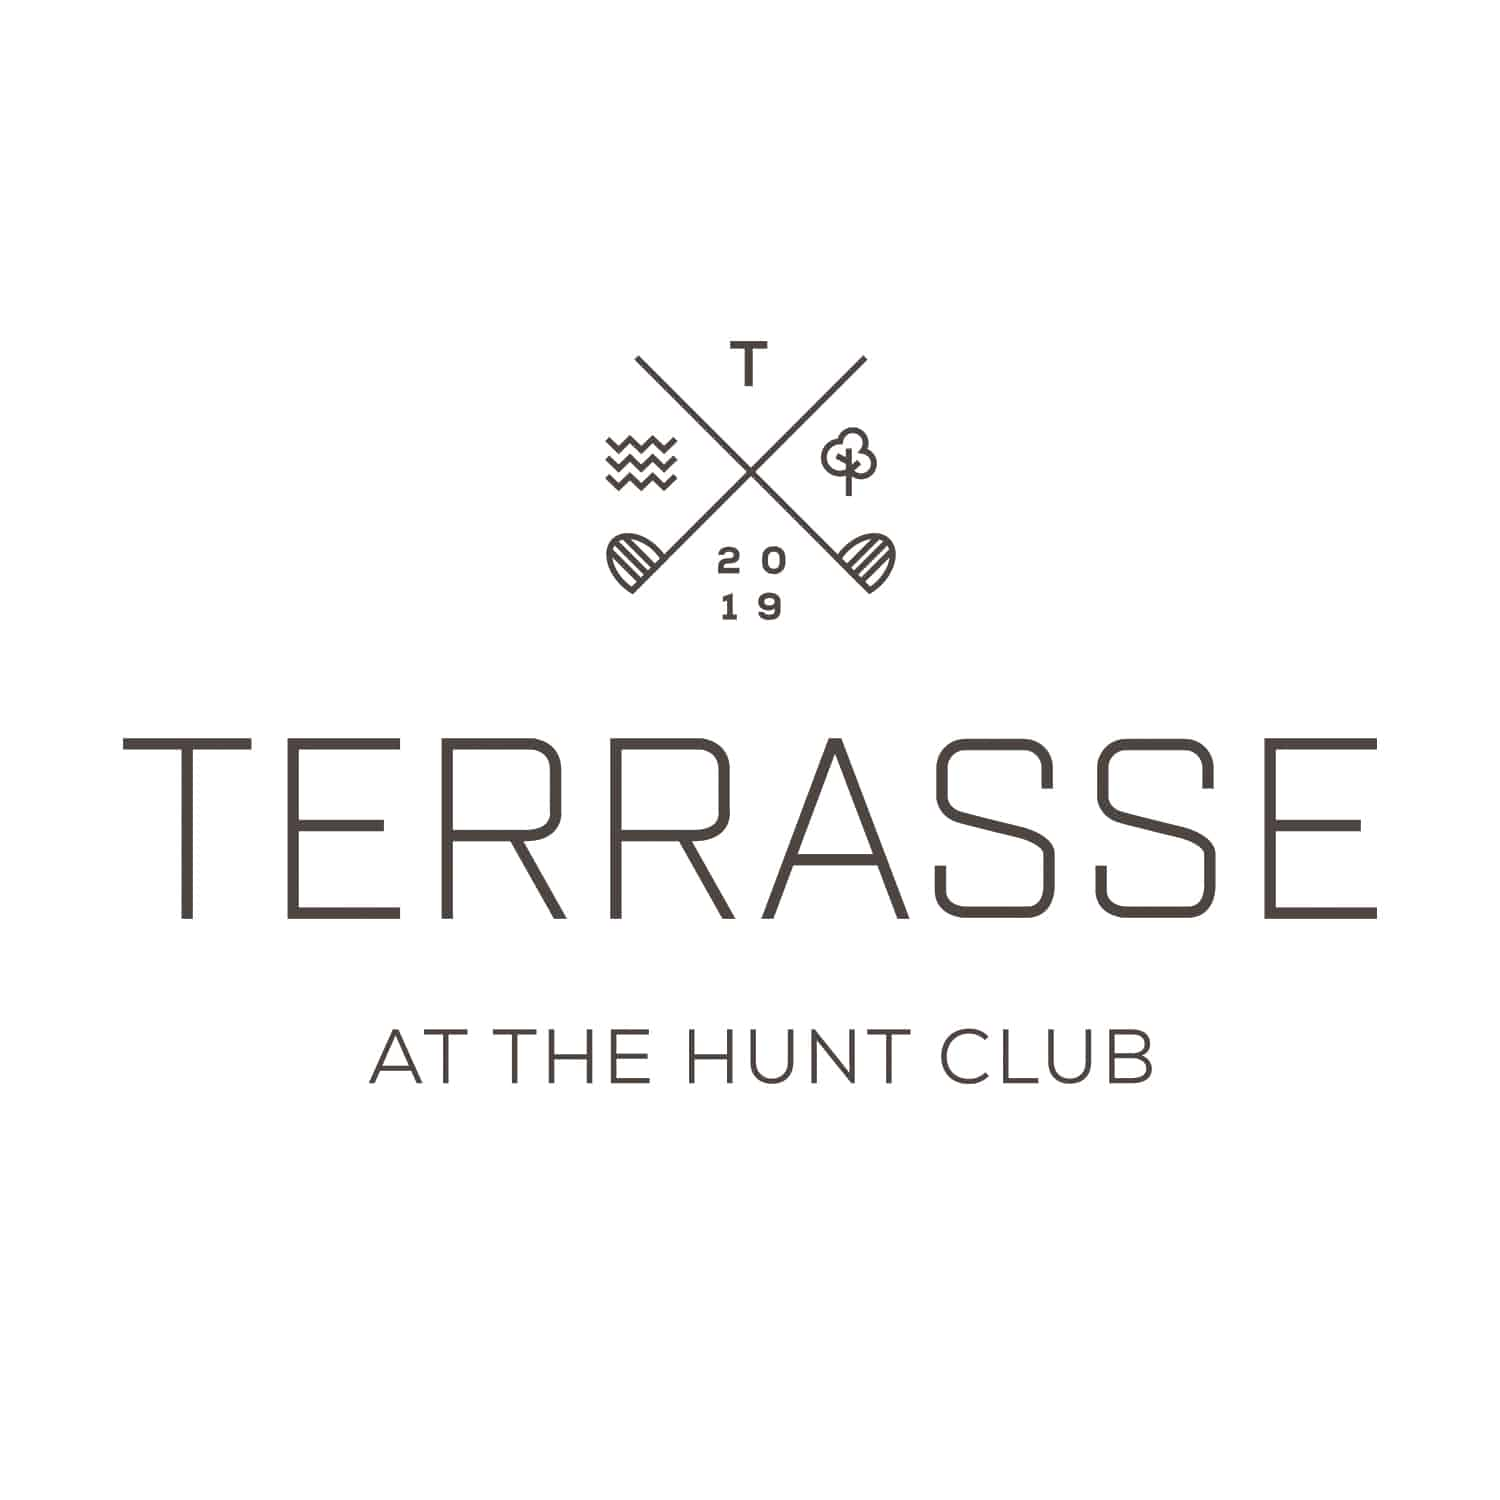 Terrasse at the Hunt Club